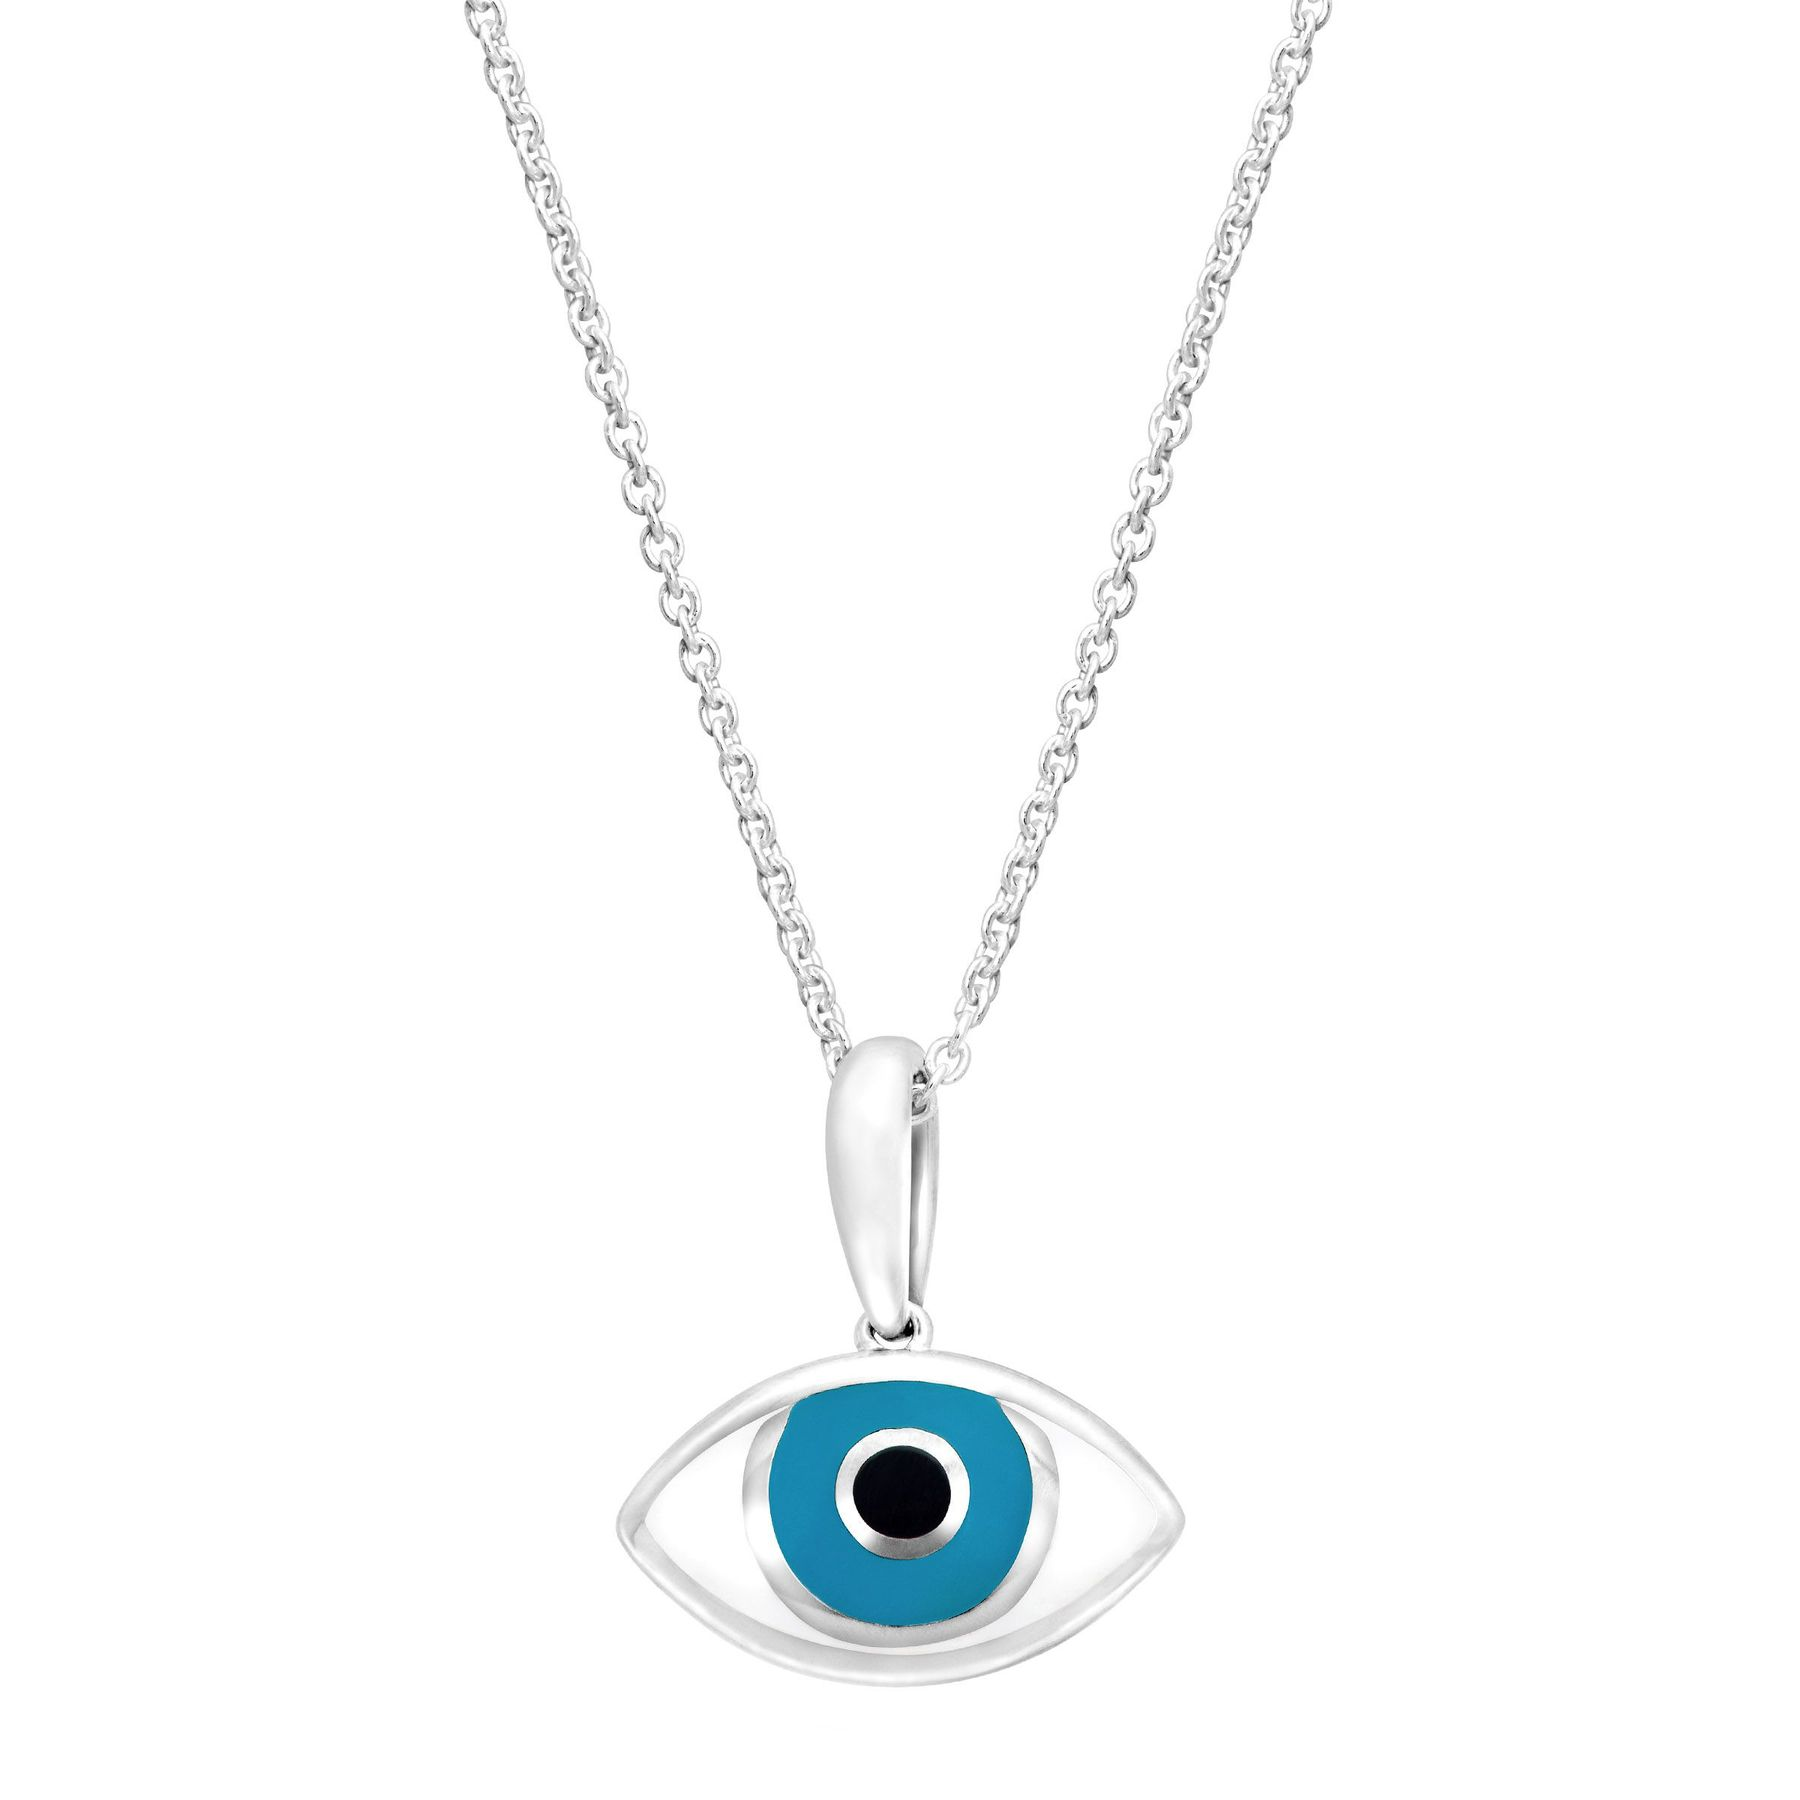 gold in lou diamond ida eye covet products nazar plated pendant james